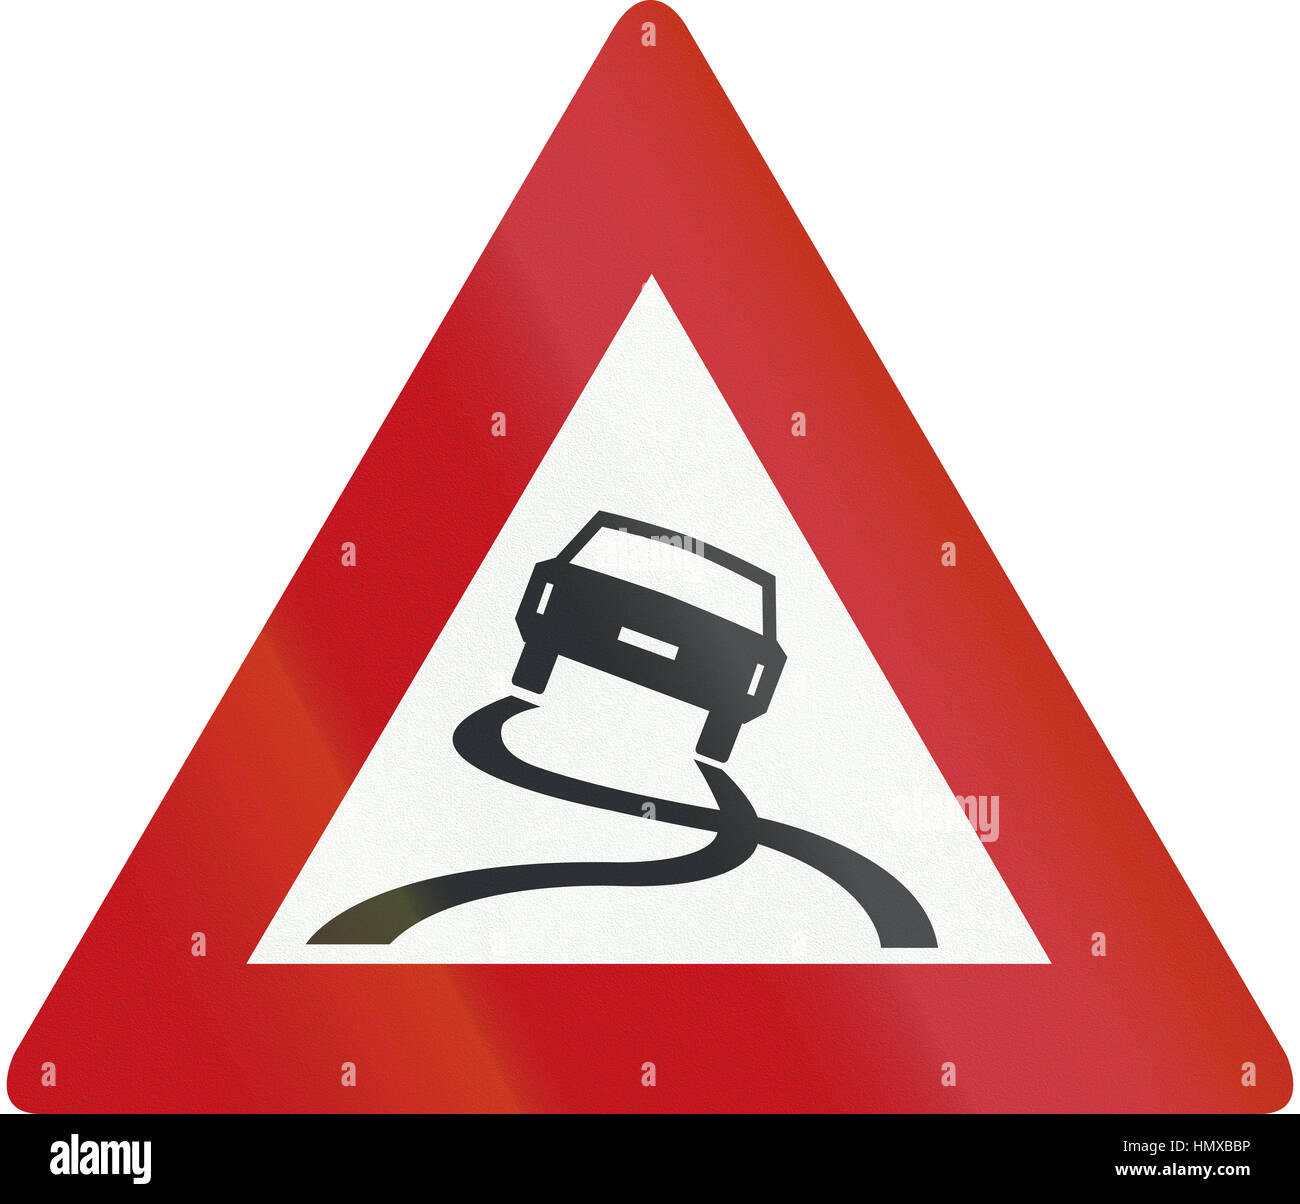 Netherlands road sign J20 - Slippery road. - Stock Image